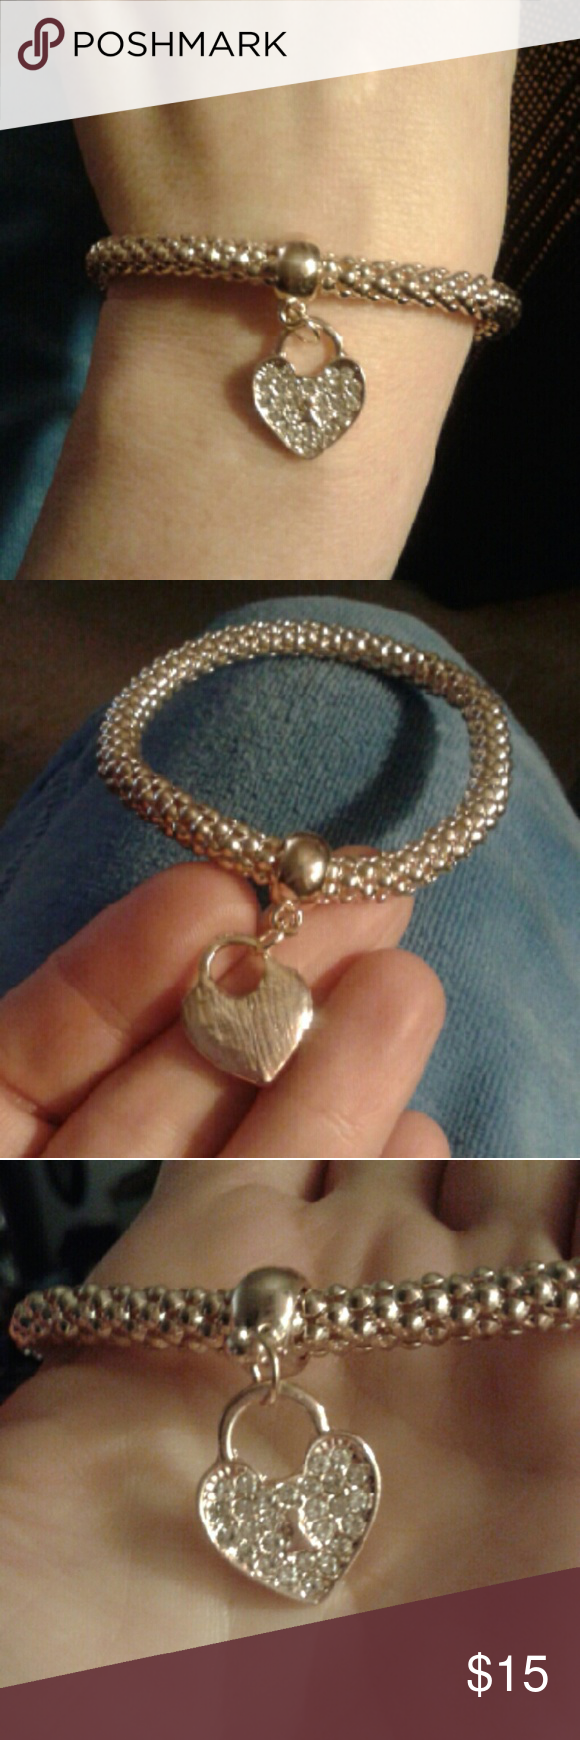 """Gold Mesh Semi Stretch Crystal Heart Bracelet Adorable & Unique, New...Mesh, Semi-Stretch,, Gold, Heart Bracelet w/Crystals on One Side & Polished/Brushed Surface on The Other Side, Will Fit 6""""-7"""" Wrists. Trending Jewelry Jewelry Bracelets"""